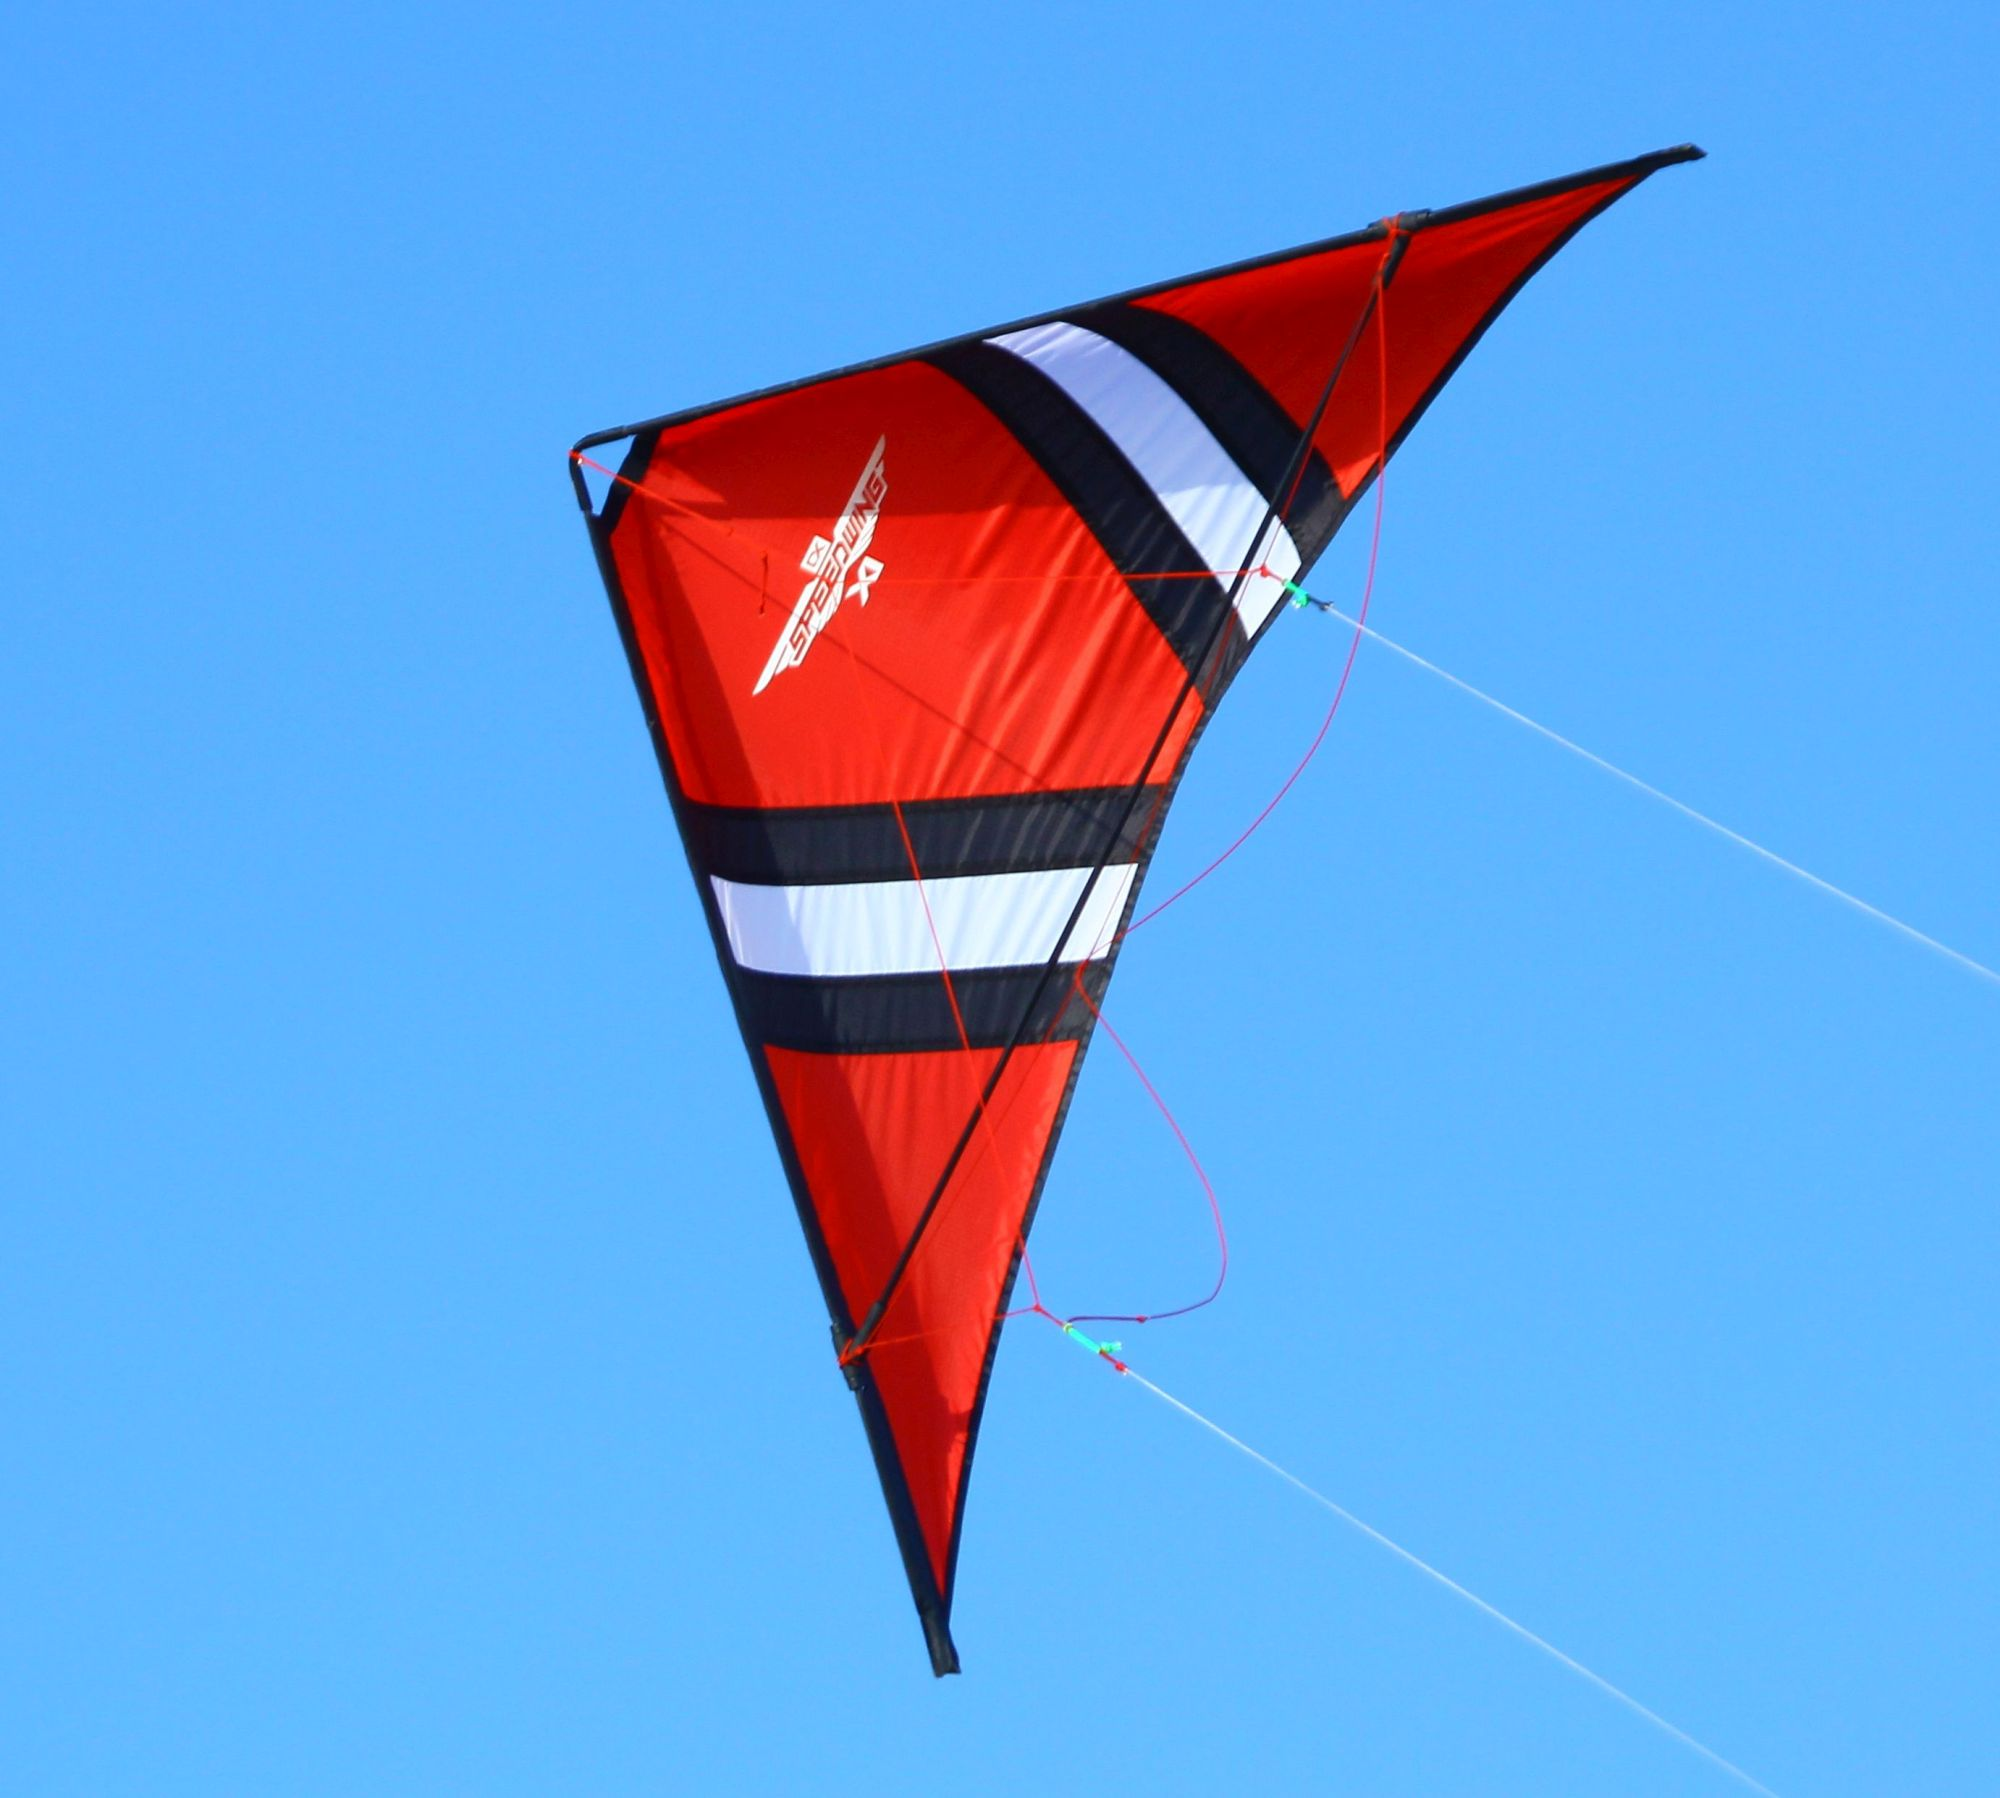 Cross Kites SpeedWing X1 Stunt Kite Red In Flight